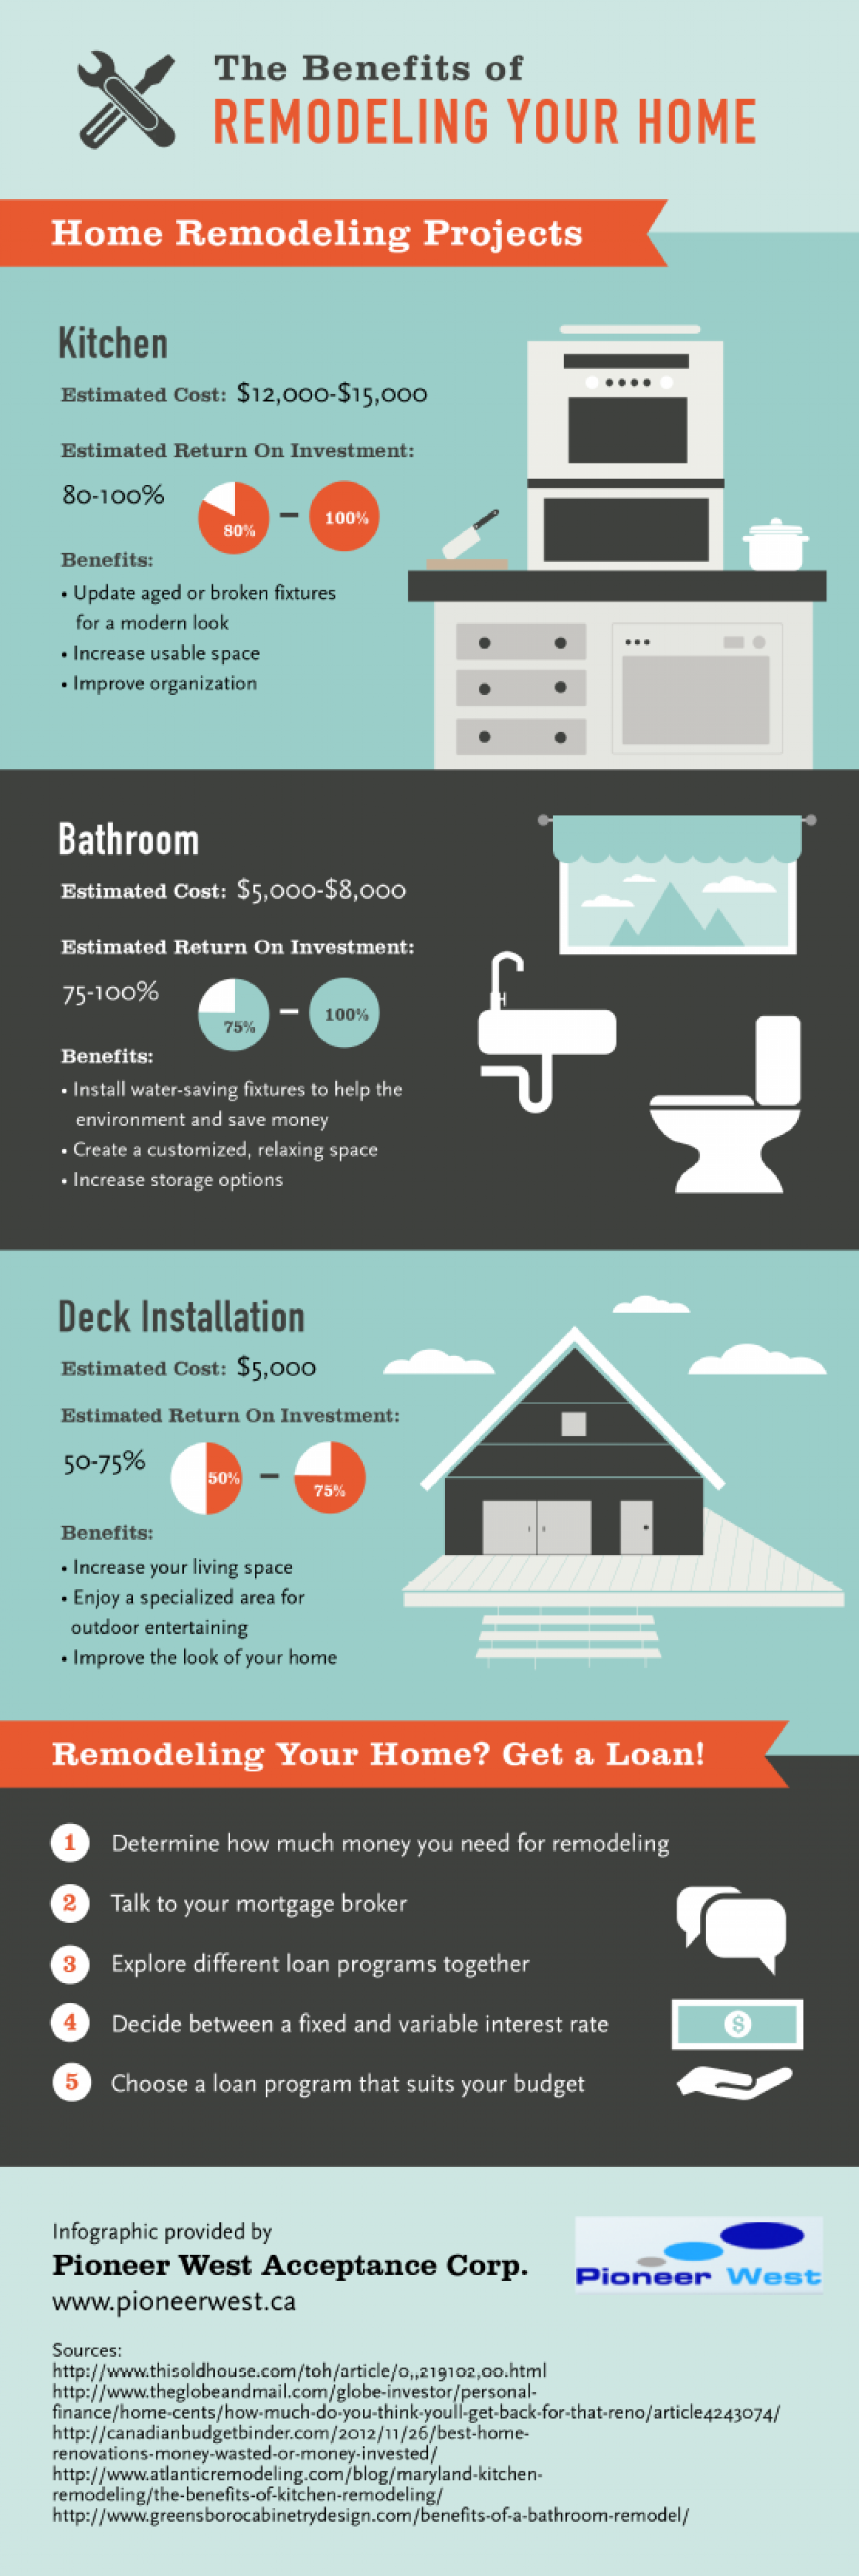 The Benefits of Remodeling Your Home Infographic